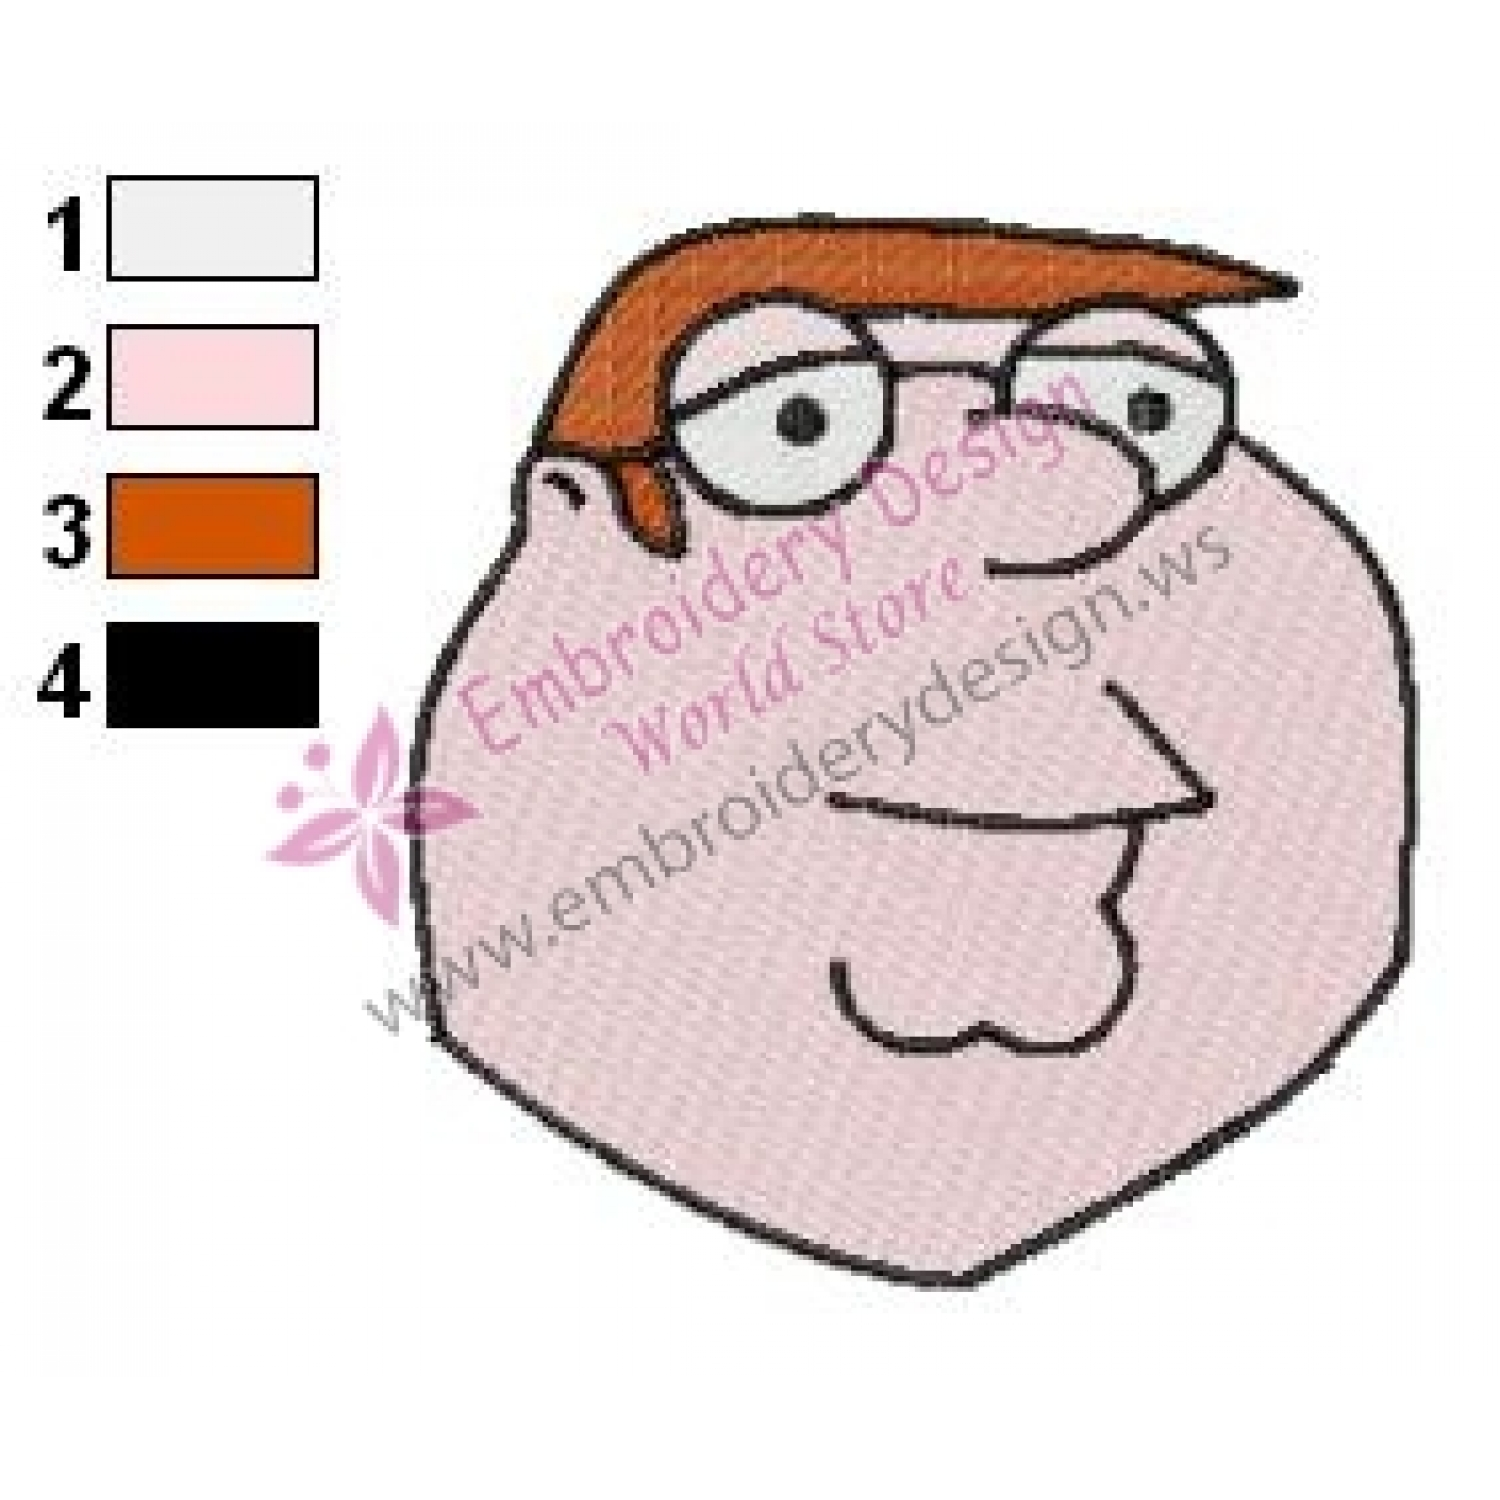 Peter griffin funny face family guy embroidery design